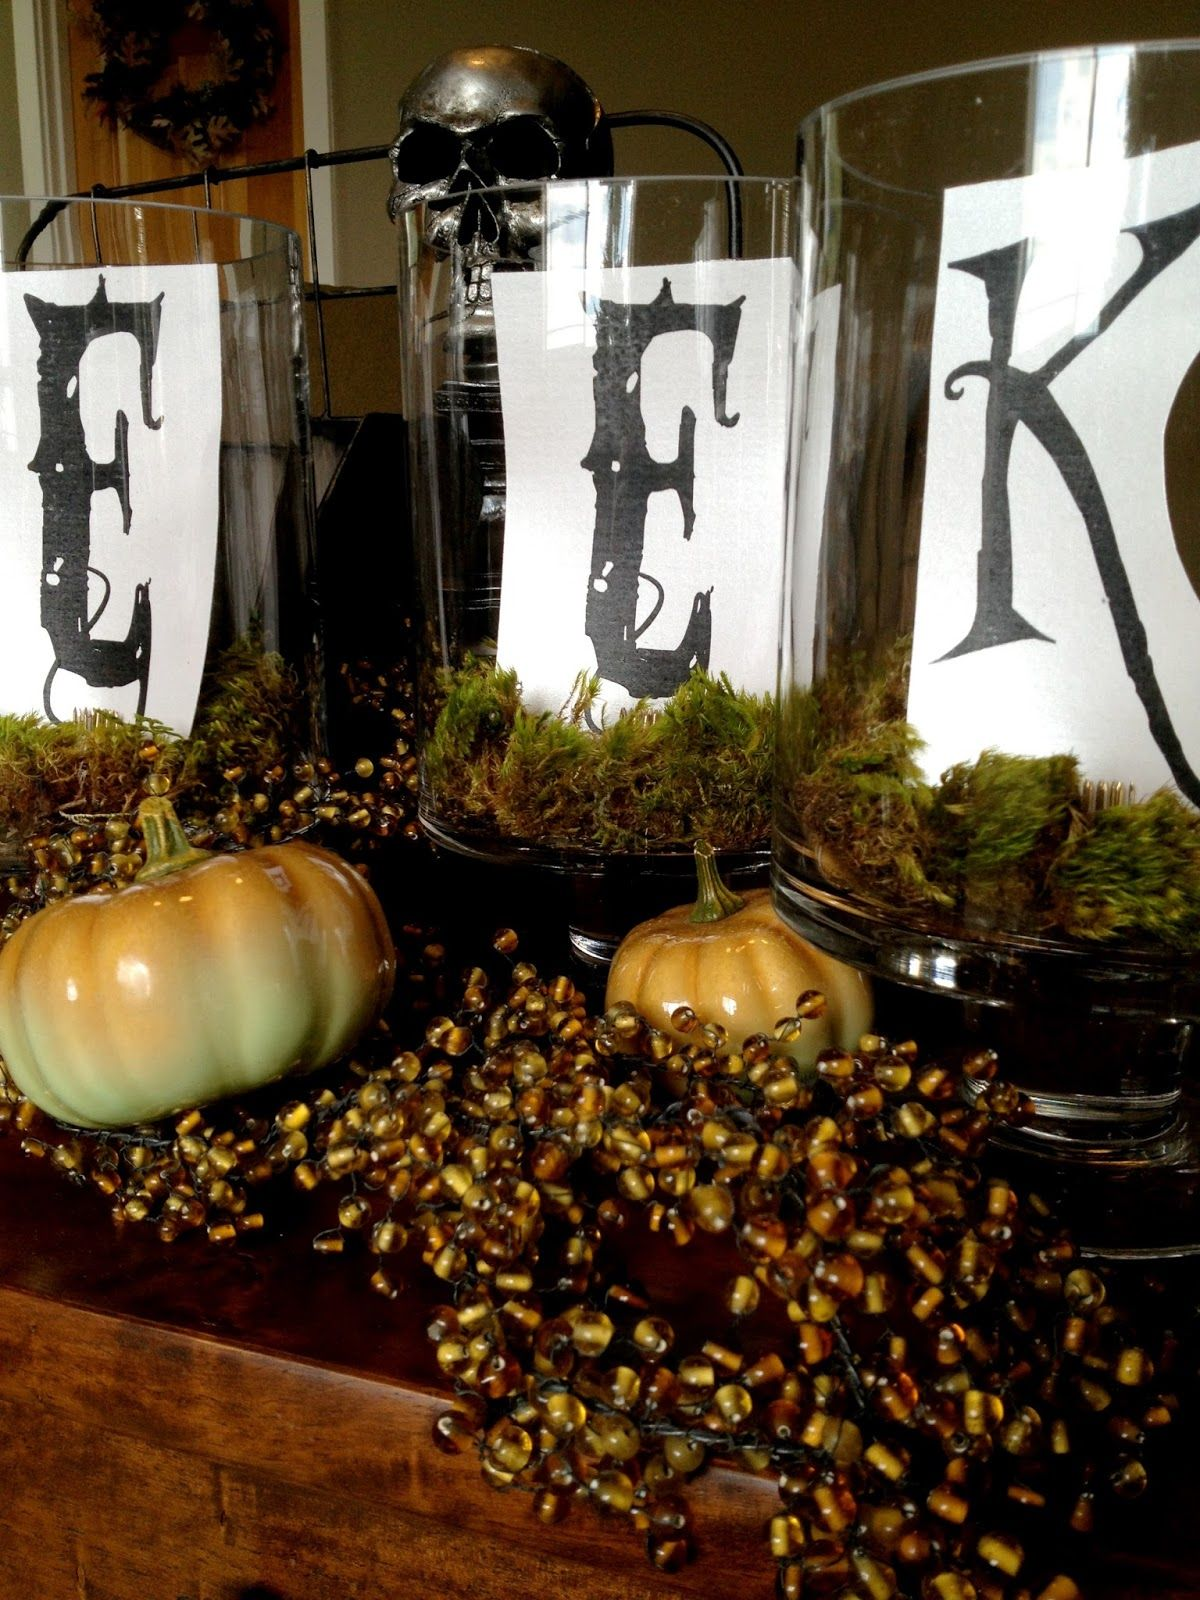 DIY simple Halloween decor - containing the eek! in glass hurricanes - Kid Friendly Halloween Decorations